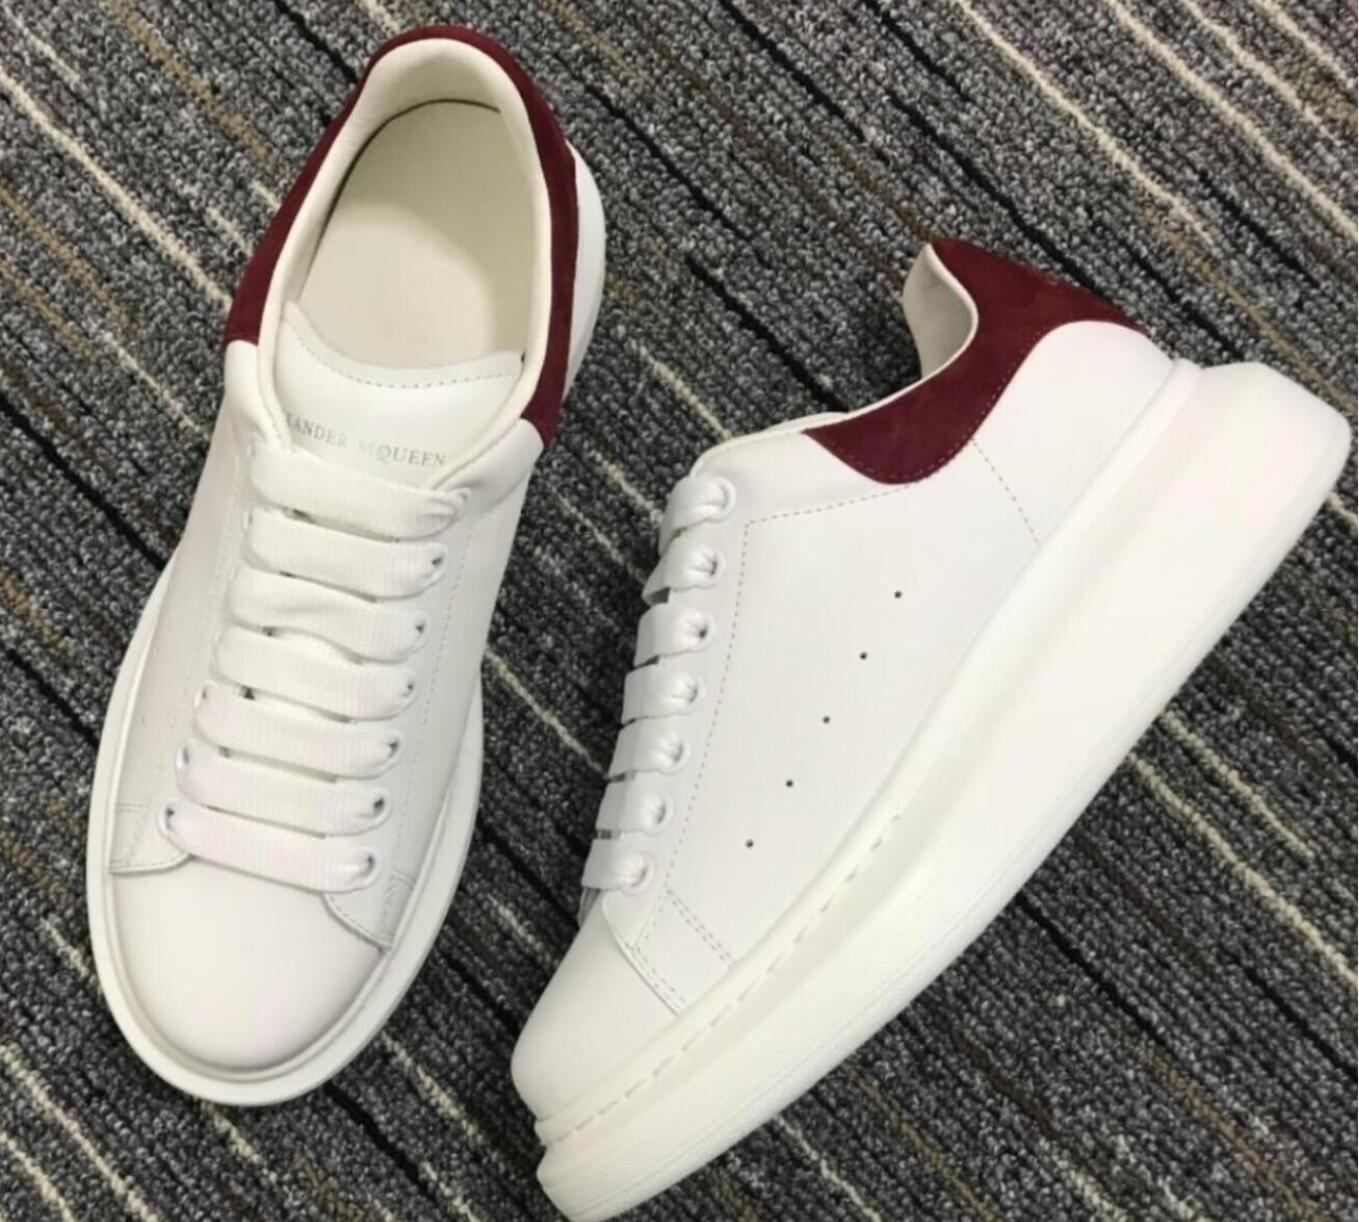 e8000a72739 High Top Most Comfortable Footwear Fe King White Hf Black Back Platform  Shoes Flat Mc Casual Shoes Lady Black Pink Gold Women White Sneakers NZ  2019 From ...